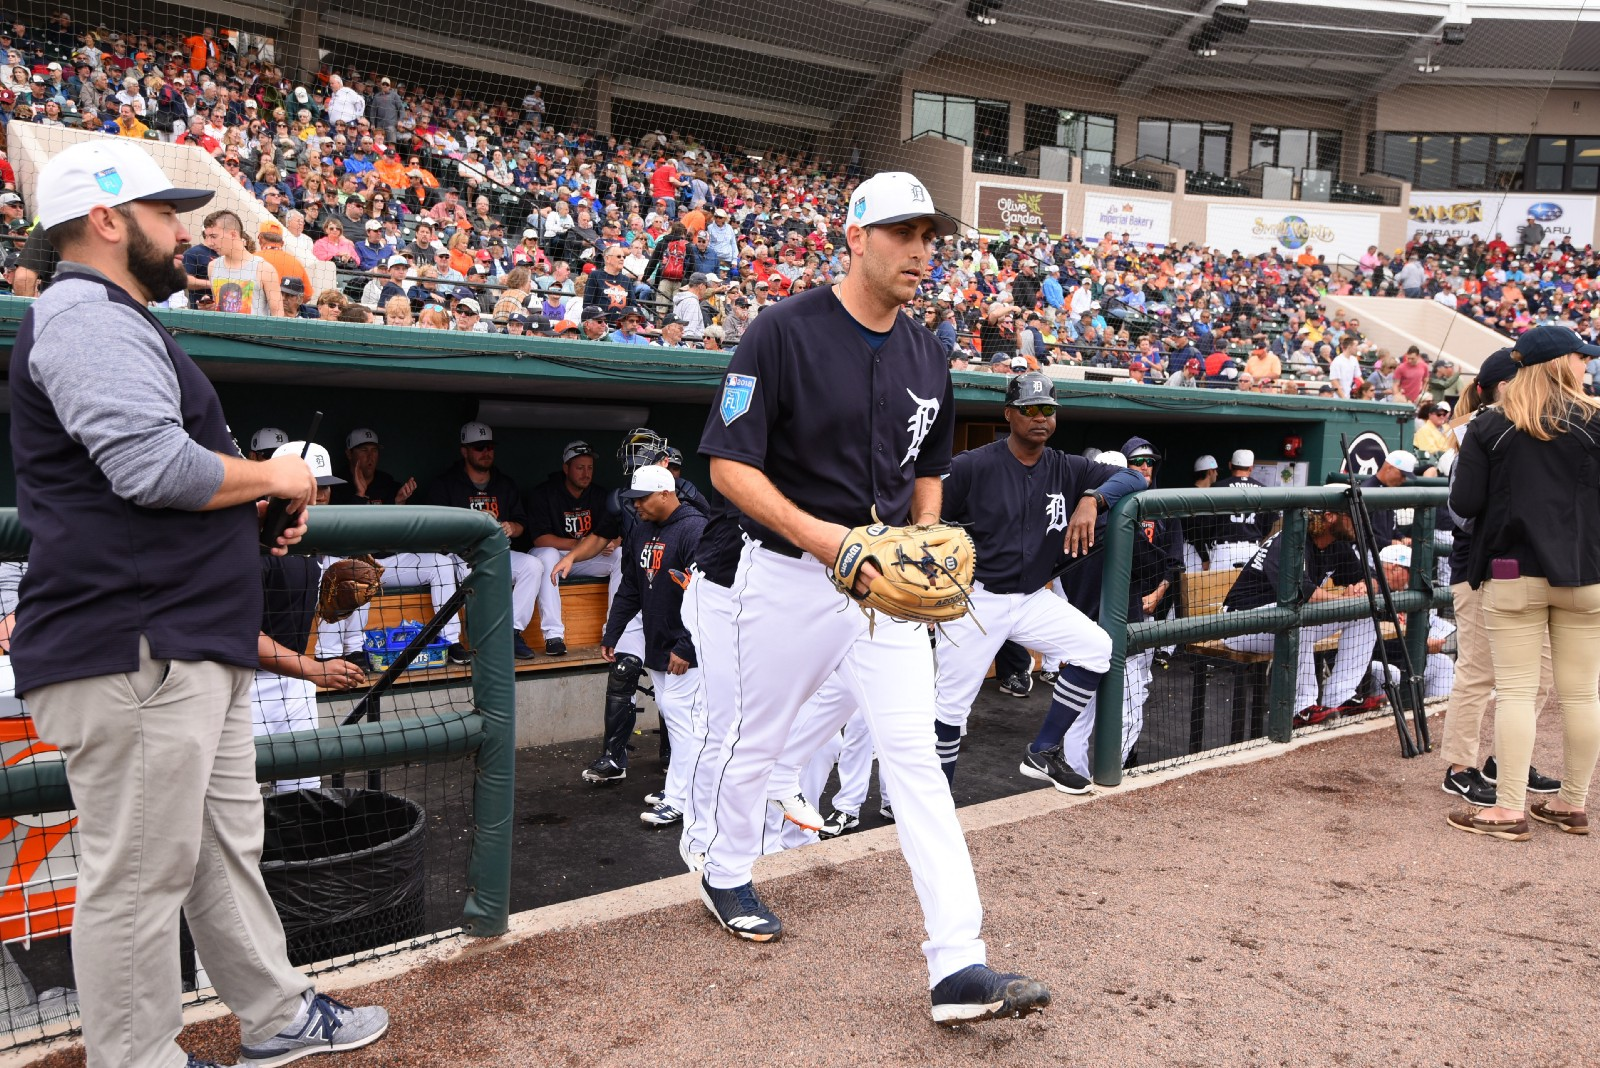 Tigers Announce 2019 Spring Training Broadcast Schedule